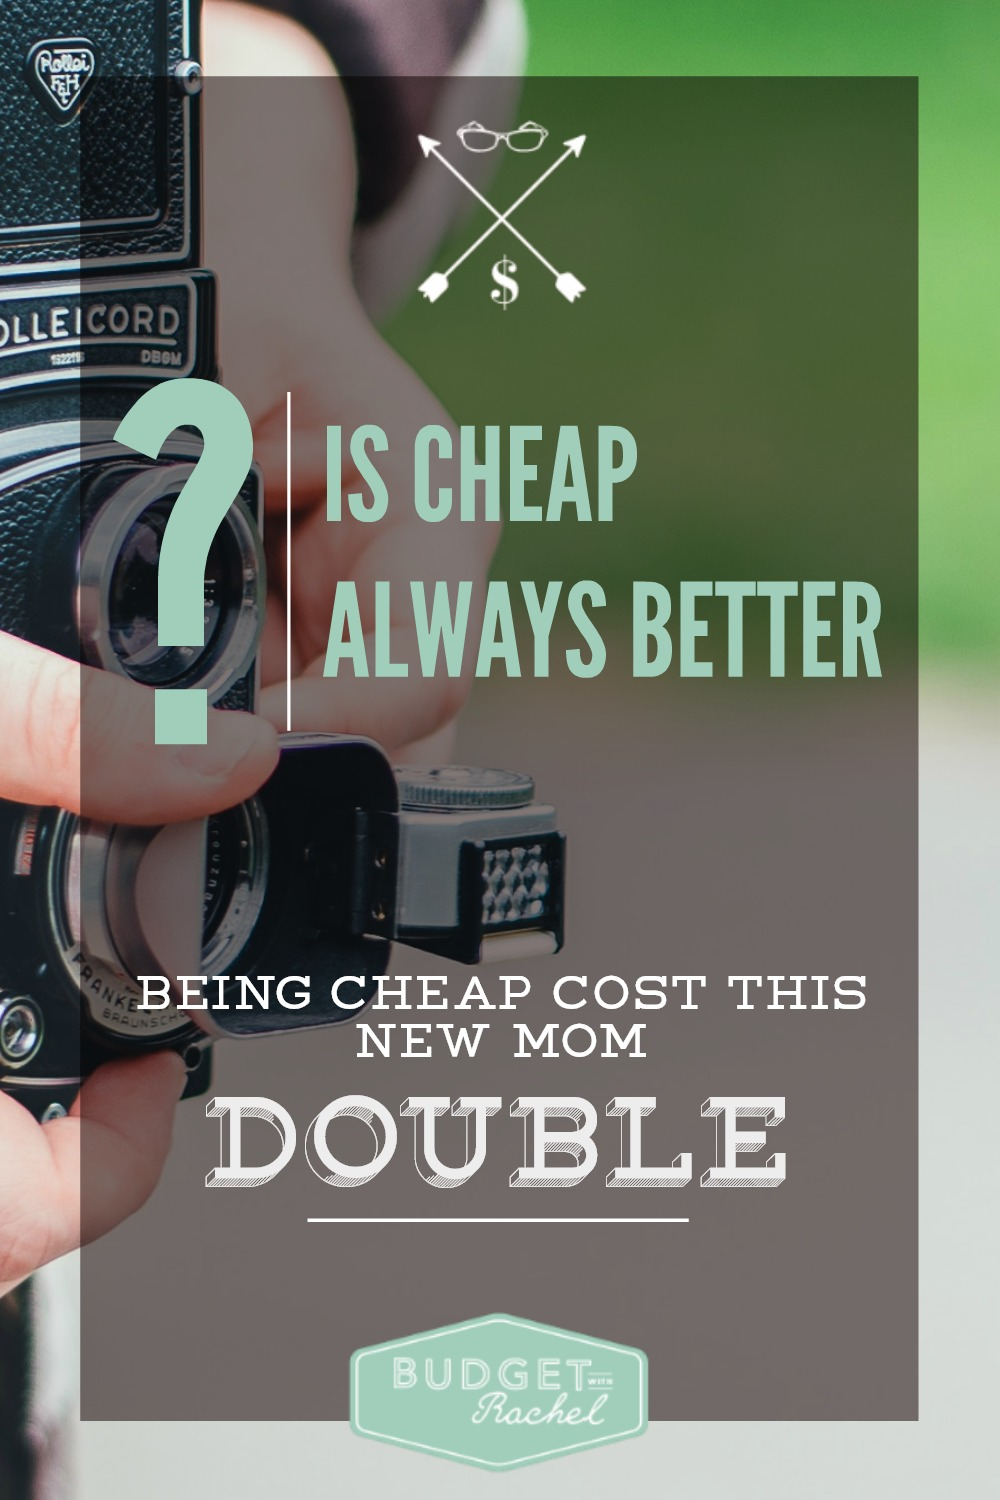 How Being Cheap Cost Me Double. Oh I totally feel for this mom. Being cheap ends up being expensive most of the time! This is such a funny story and a great example. I can't believe what she did in front of everyone. I can totally relate!